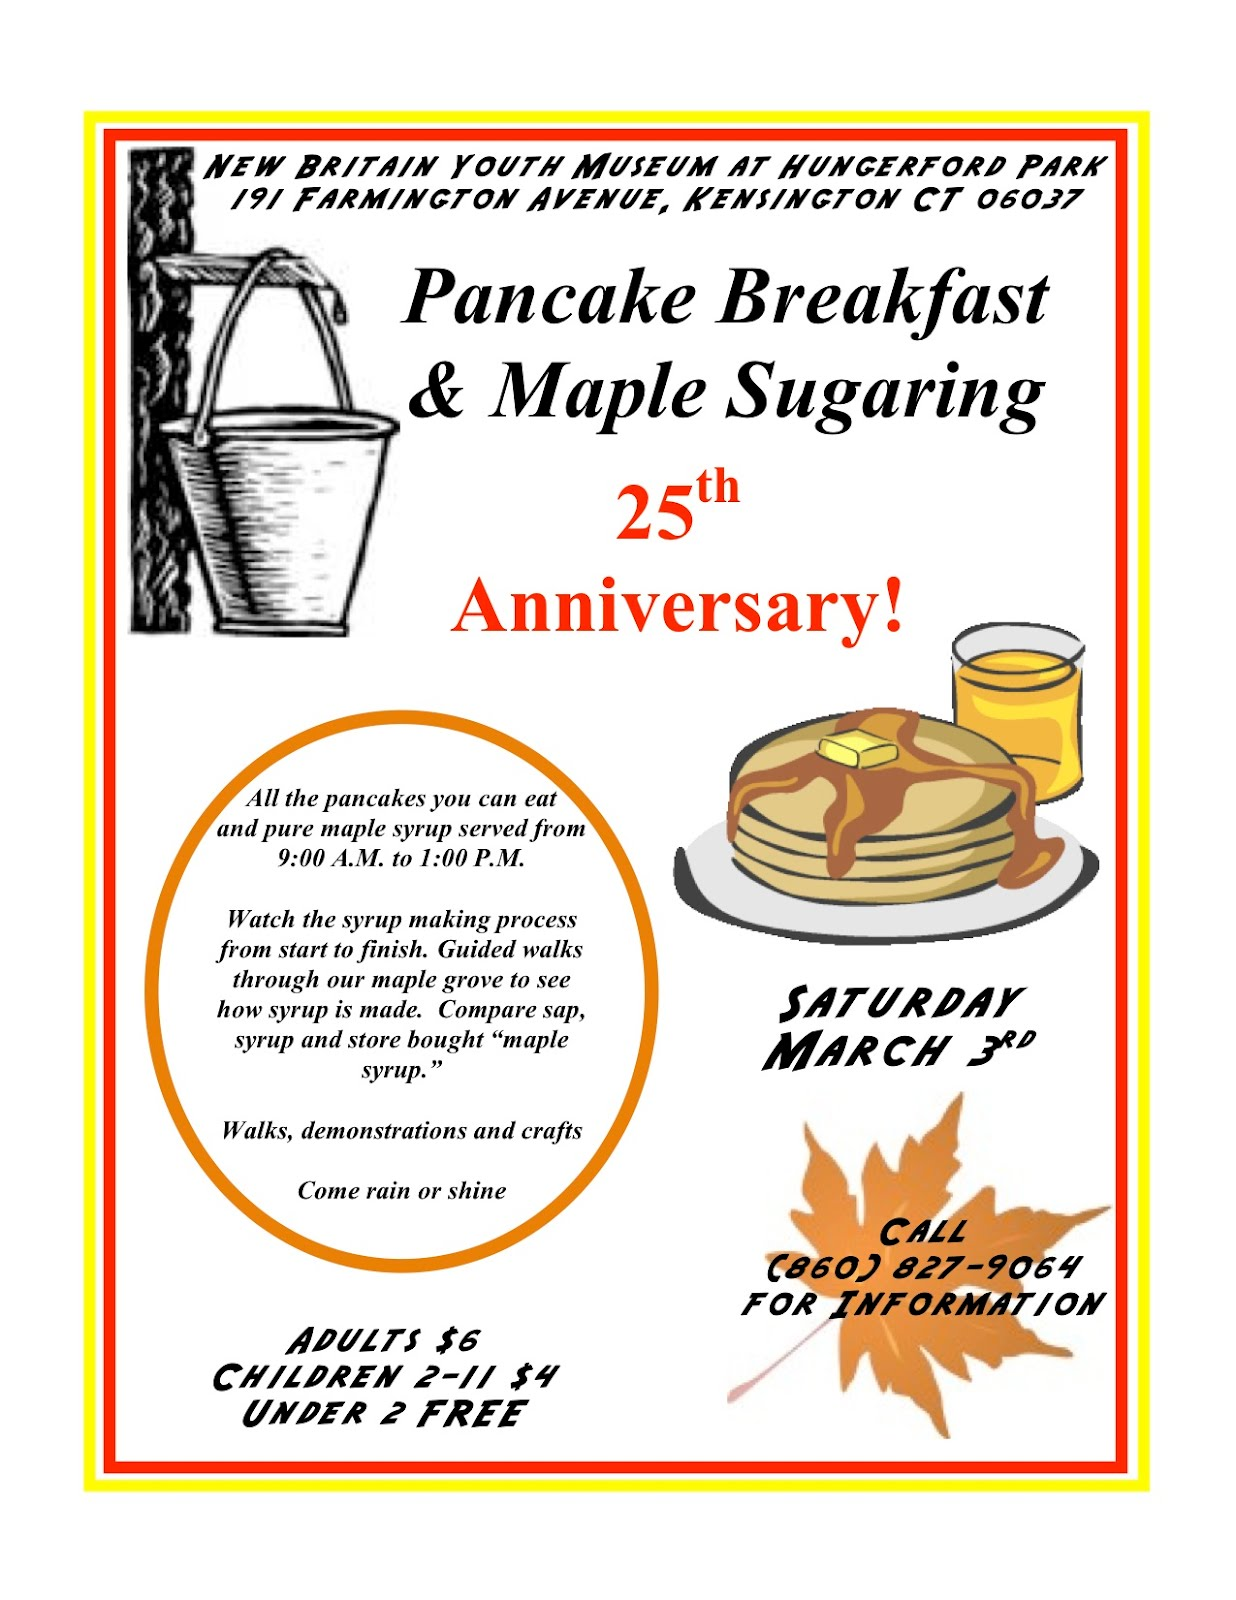 pancake breakfast fundraiser flyer template pancake breakfast fundraiser flyer pancake breakfast fundraiser flyer template dimension n tk